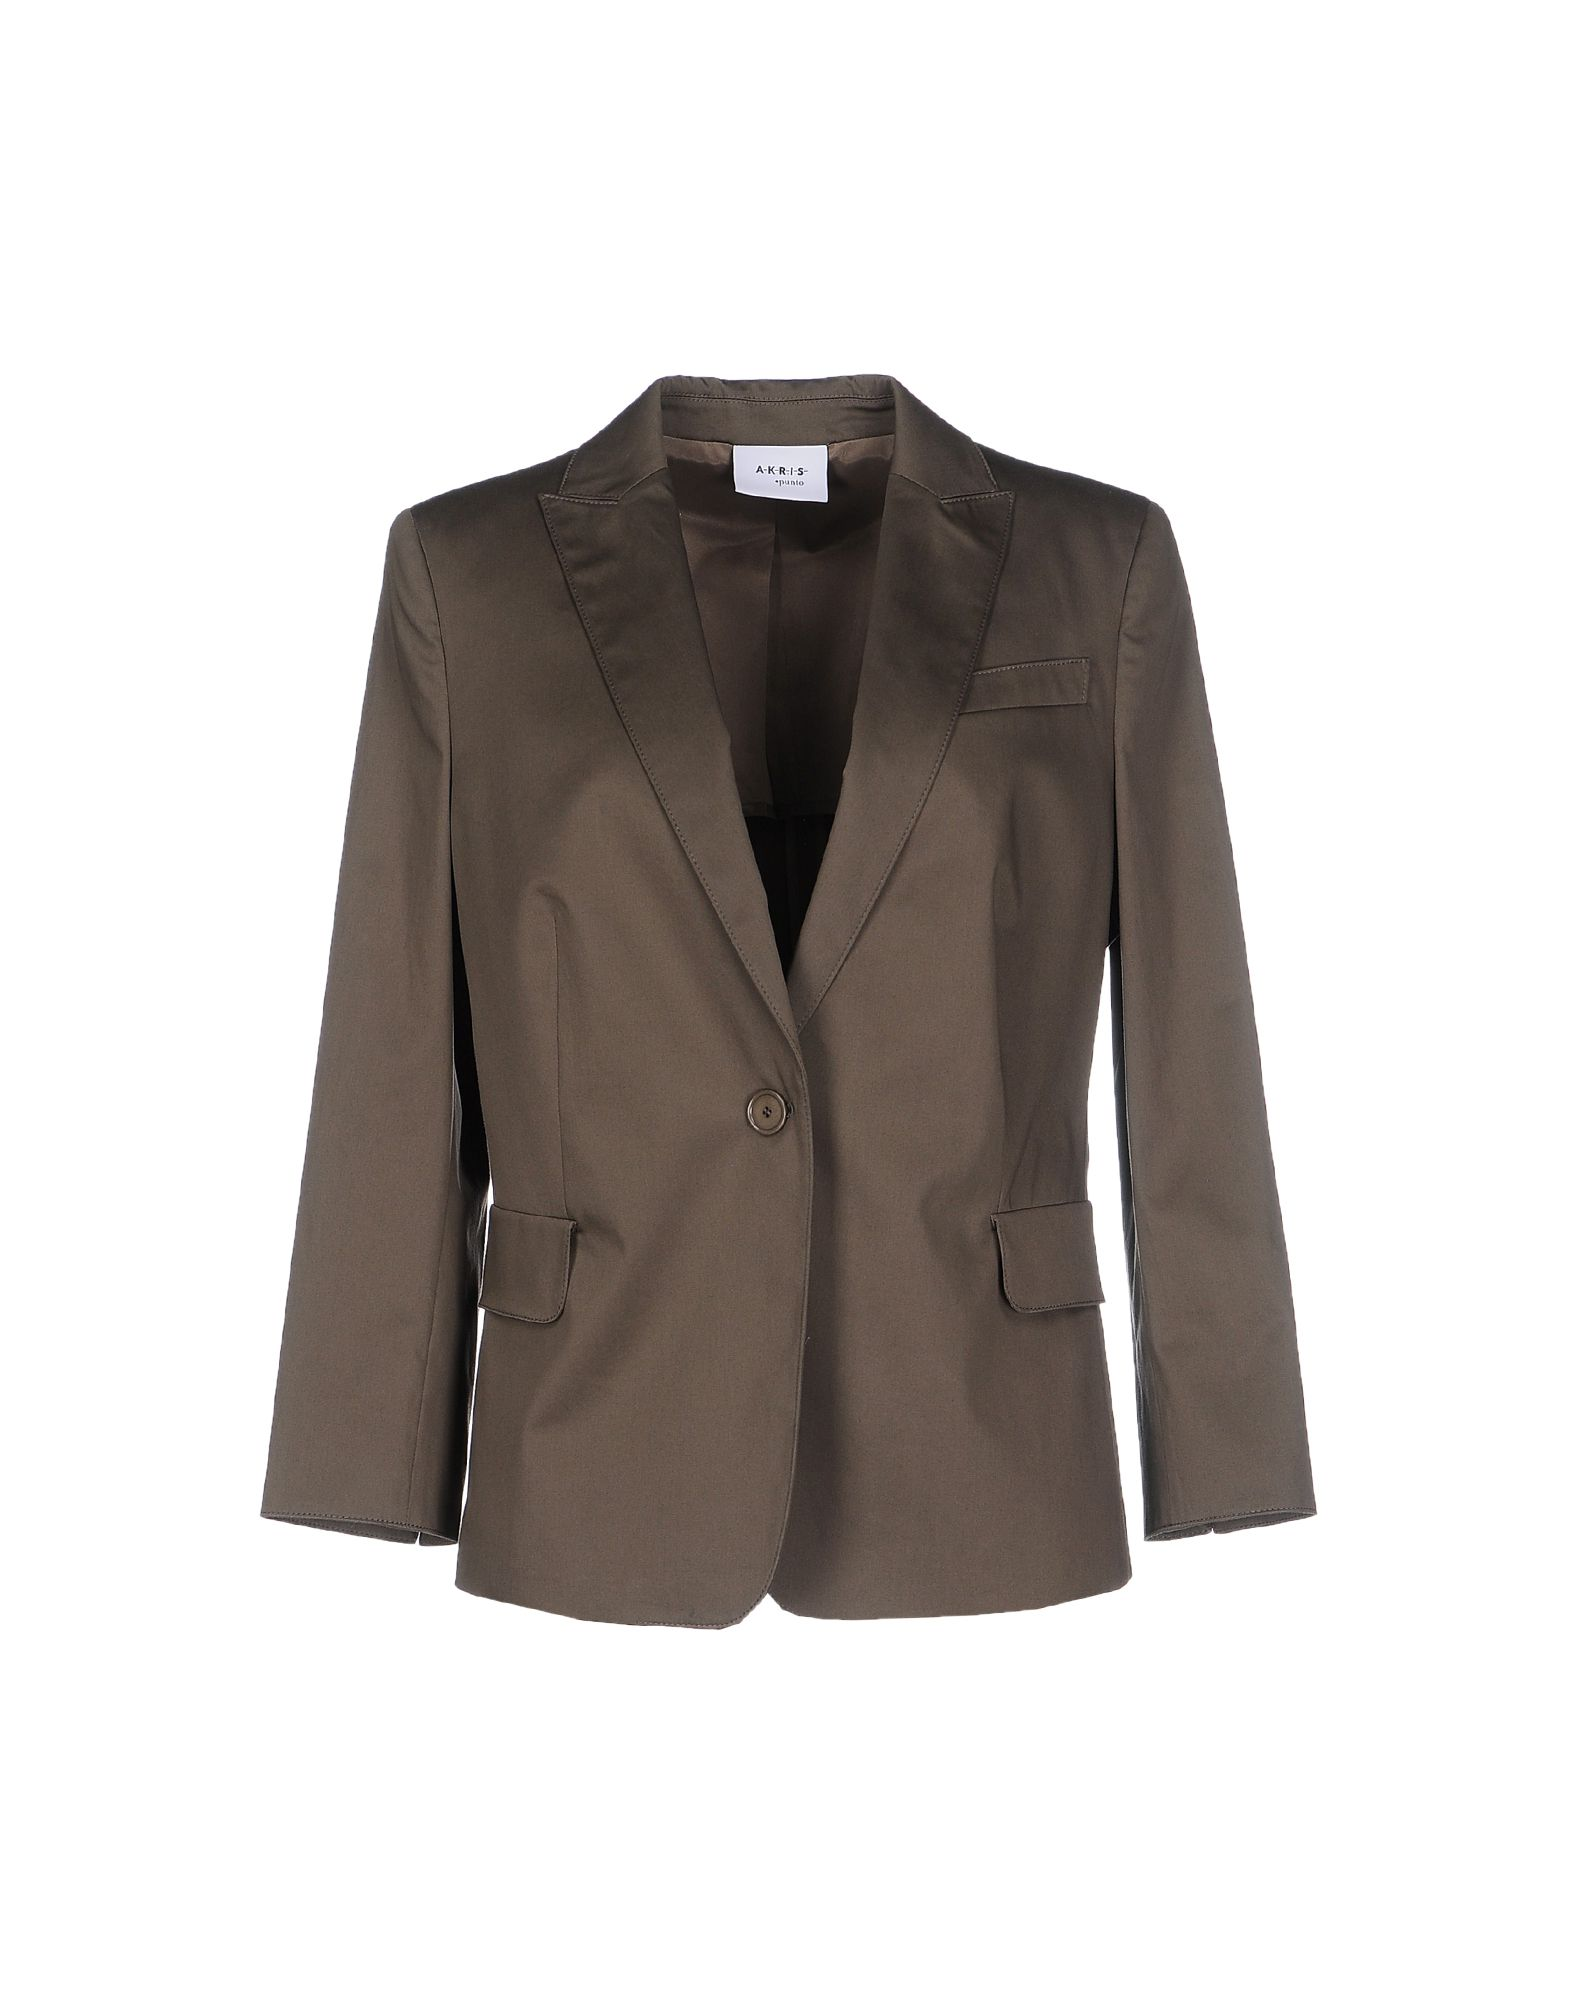 AKRIS PUNTO Suit jackets. plain weave, solid color, lapel collar, single-breasted, button closing, single chest pocket, multipockets, long sleeves, semi-lined interior. 96% Cotton, 4% Elastane